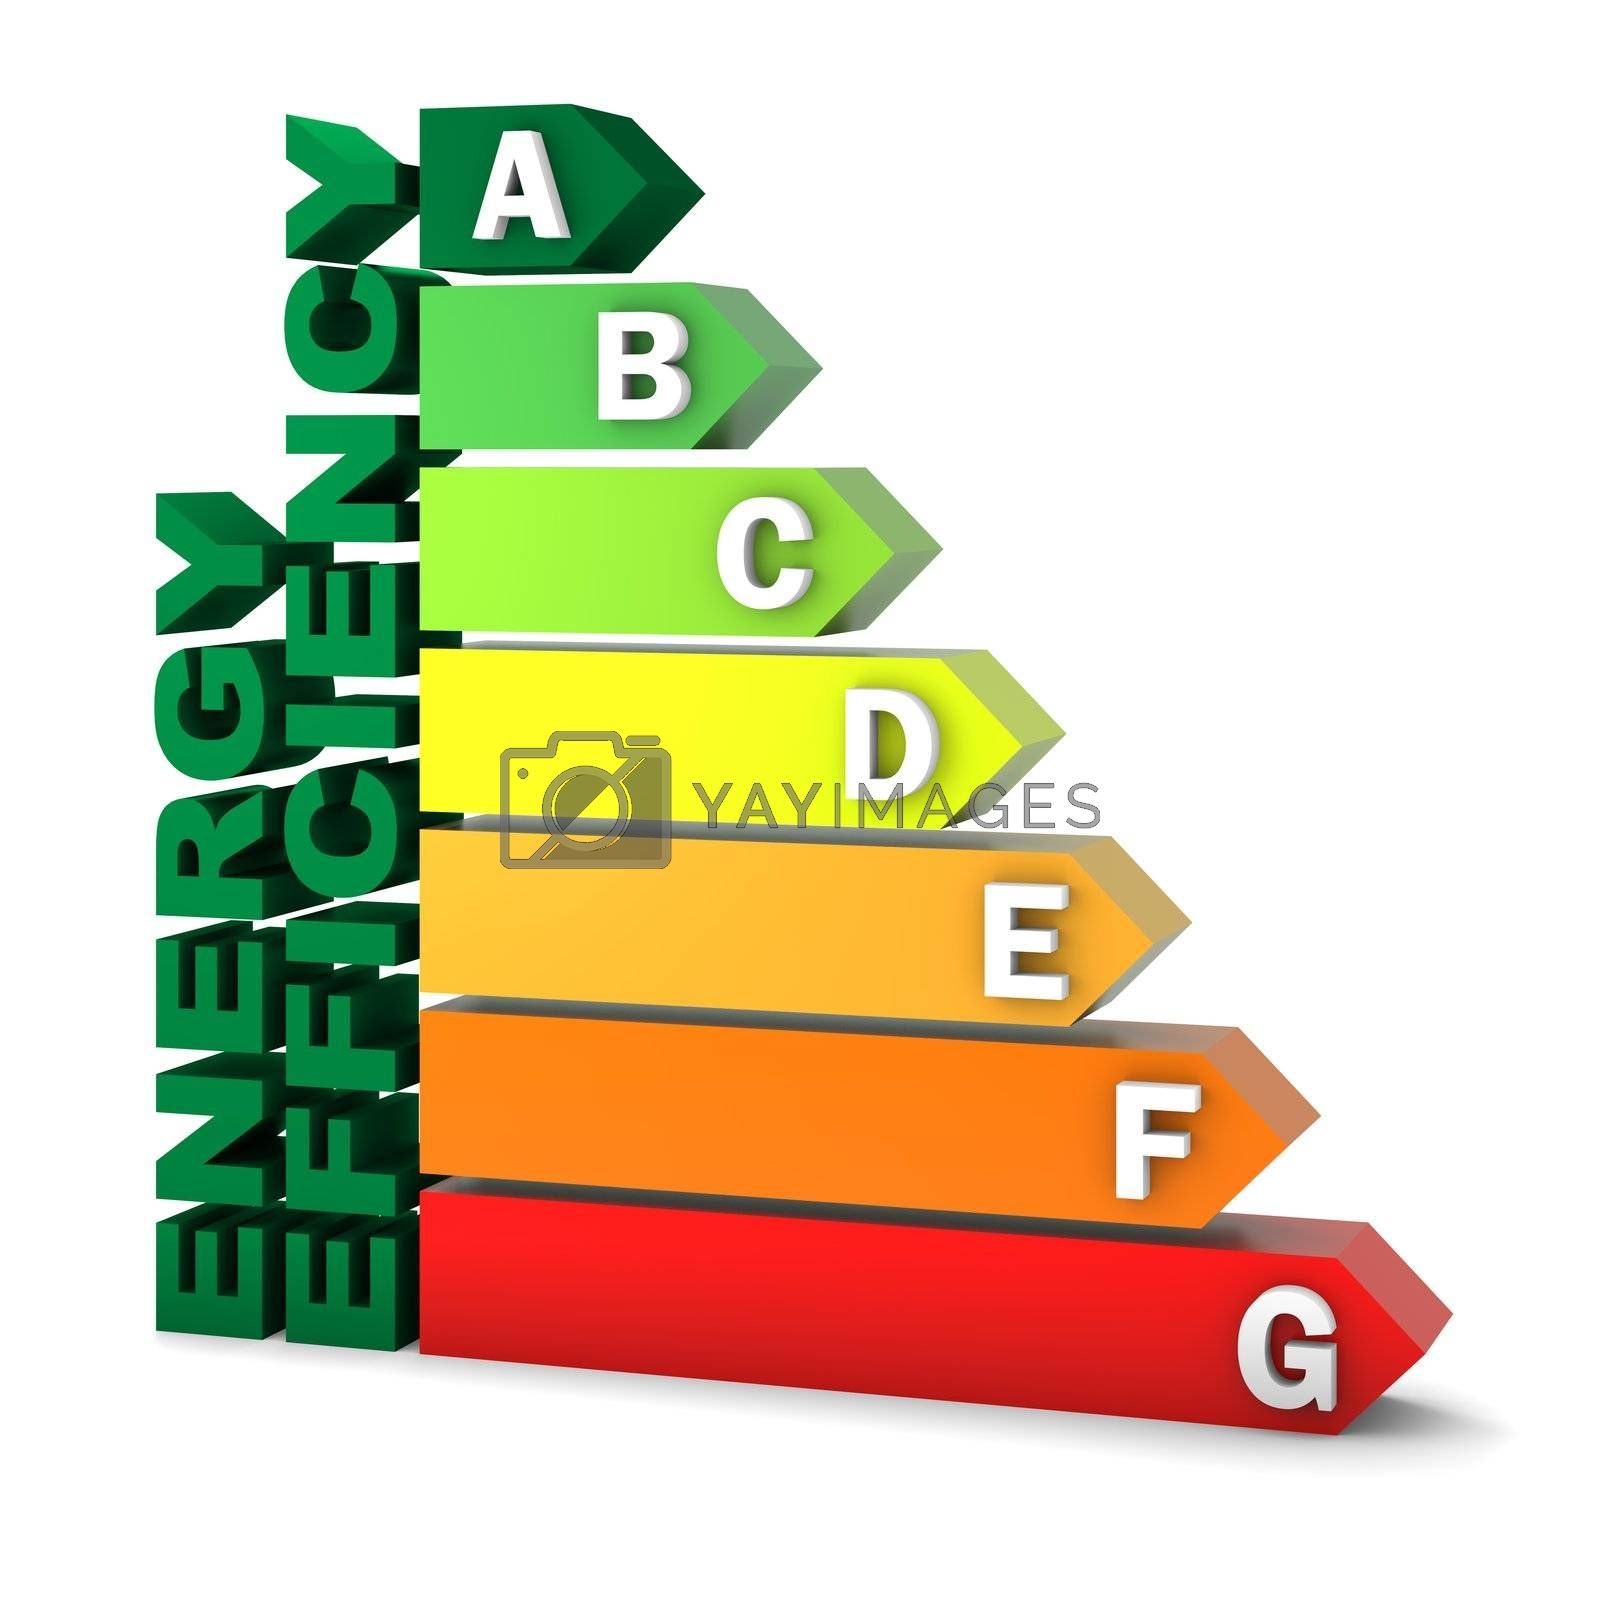 Energy efficiency rating certification system. Part of a series.